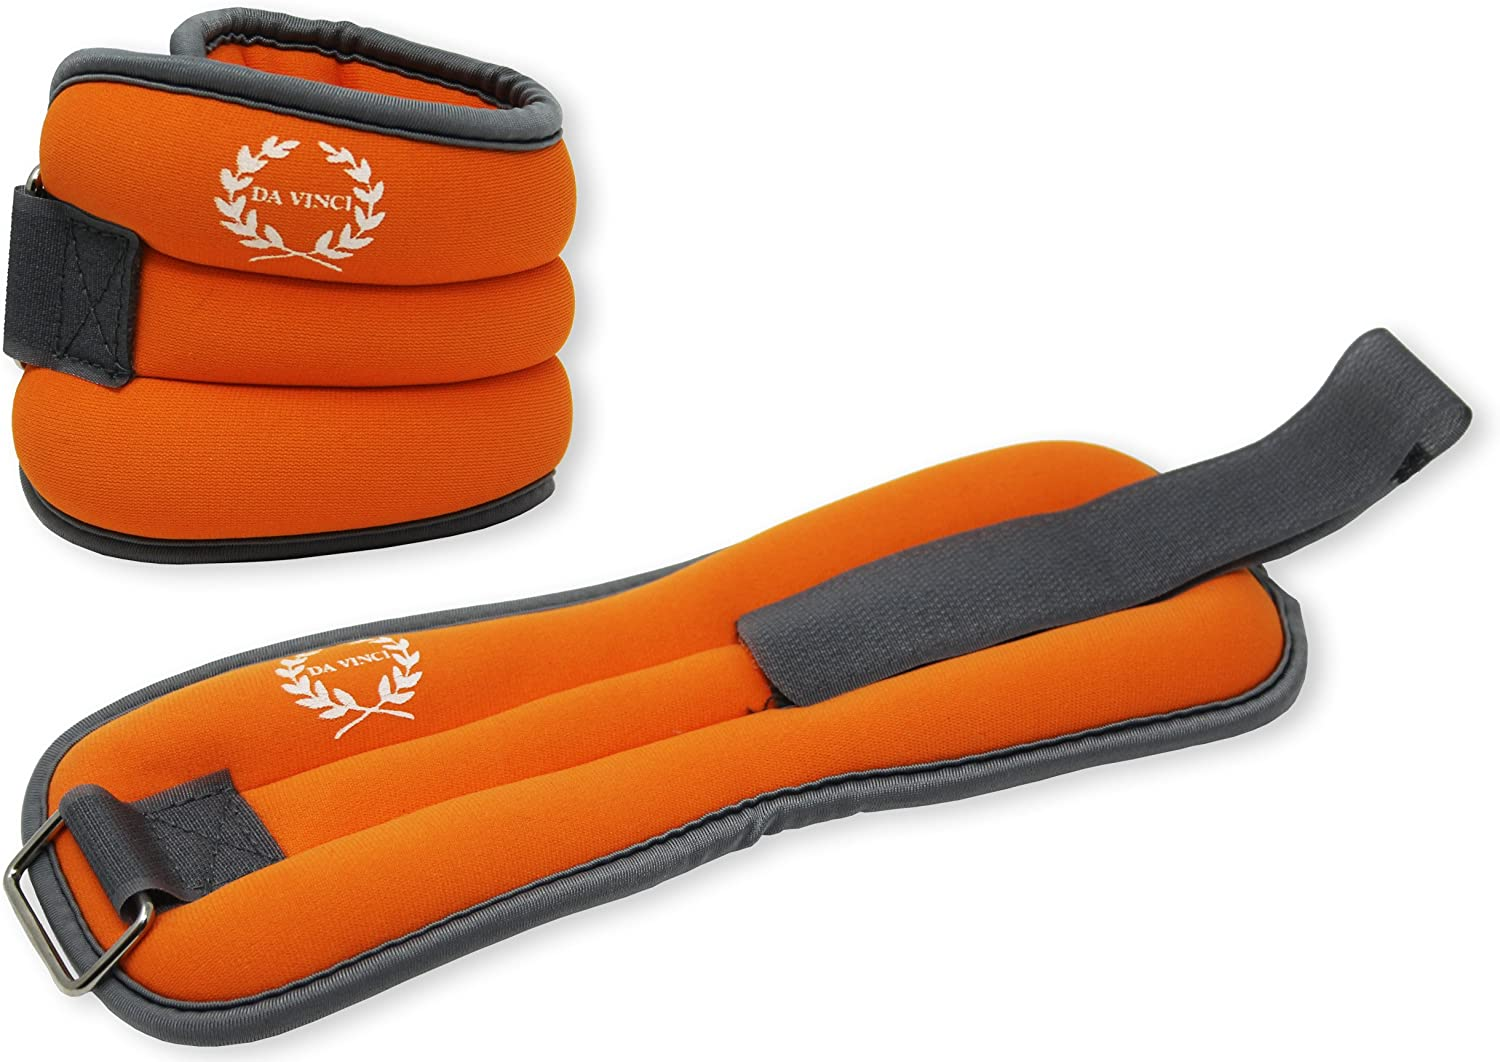 Da Vinci Adjustable Ankle or Wrist Weights Sold in Pairs of 1 to 5 lbs 2 to 10 lbs per Set